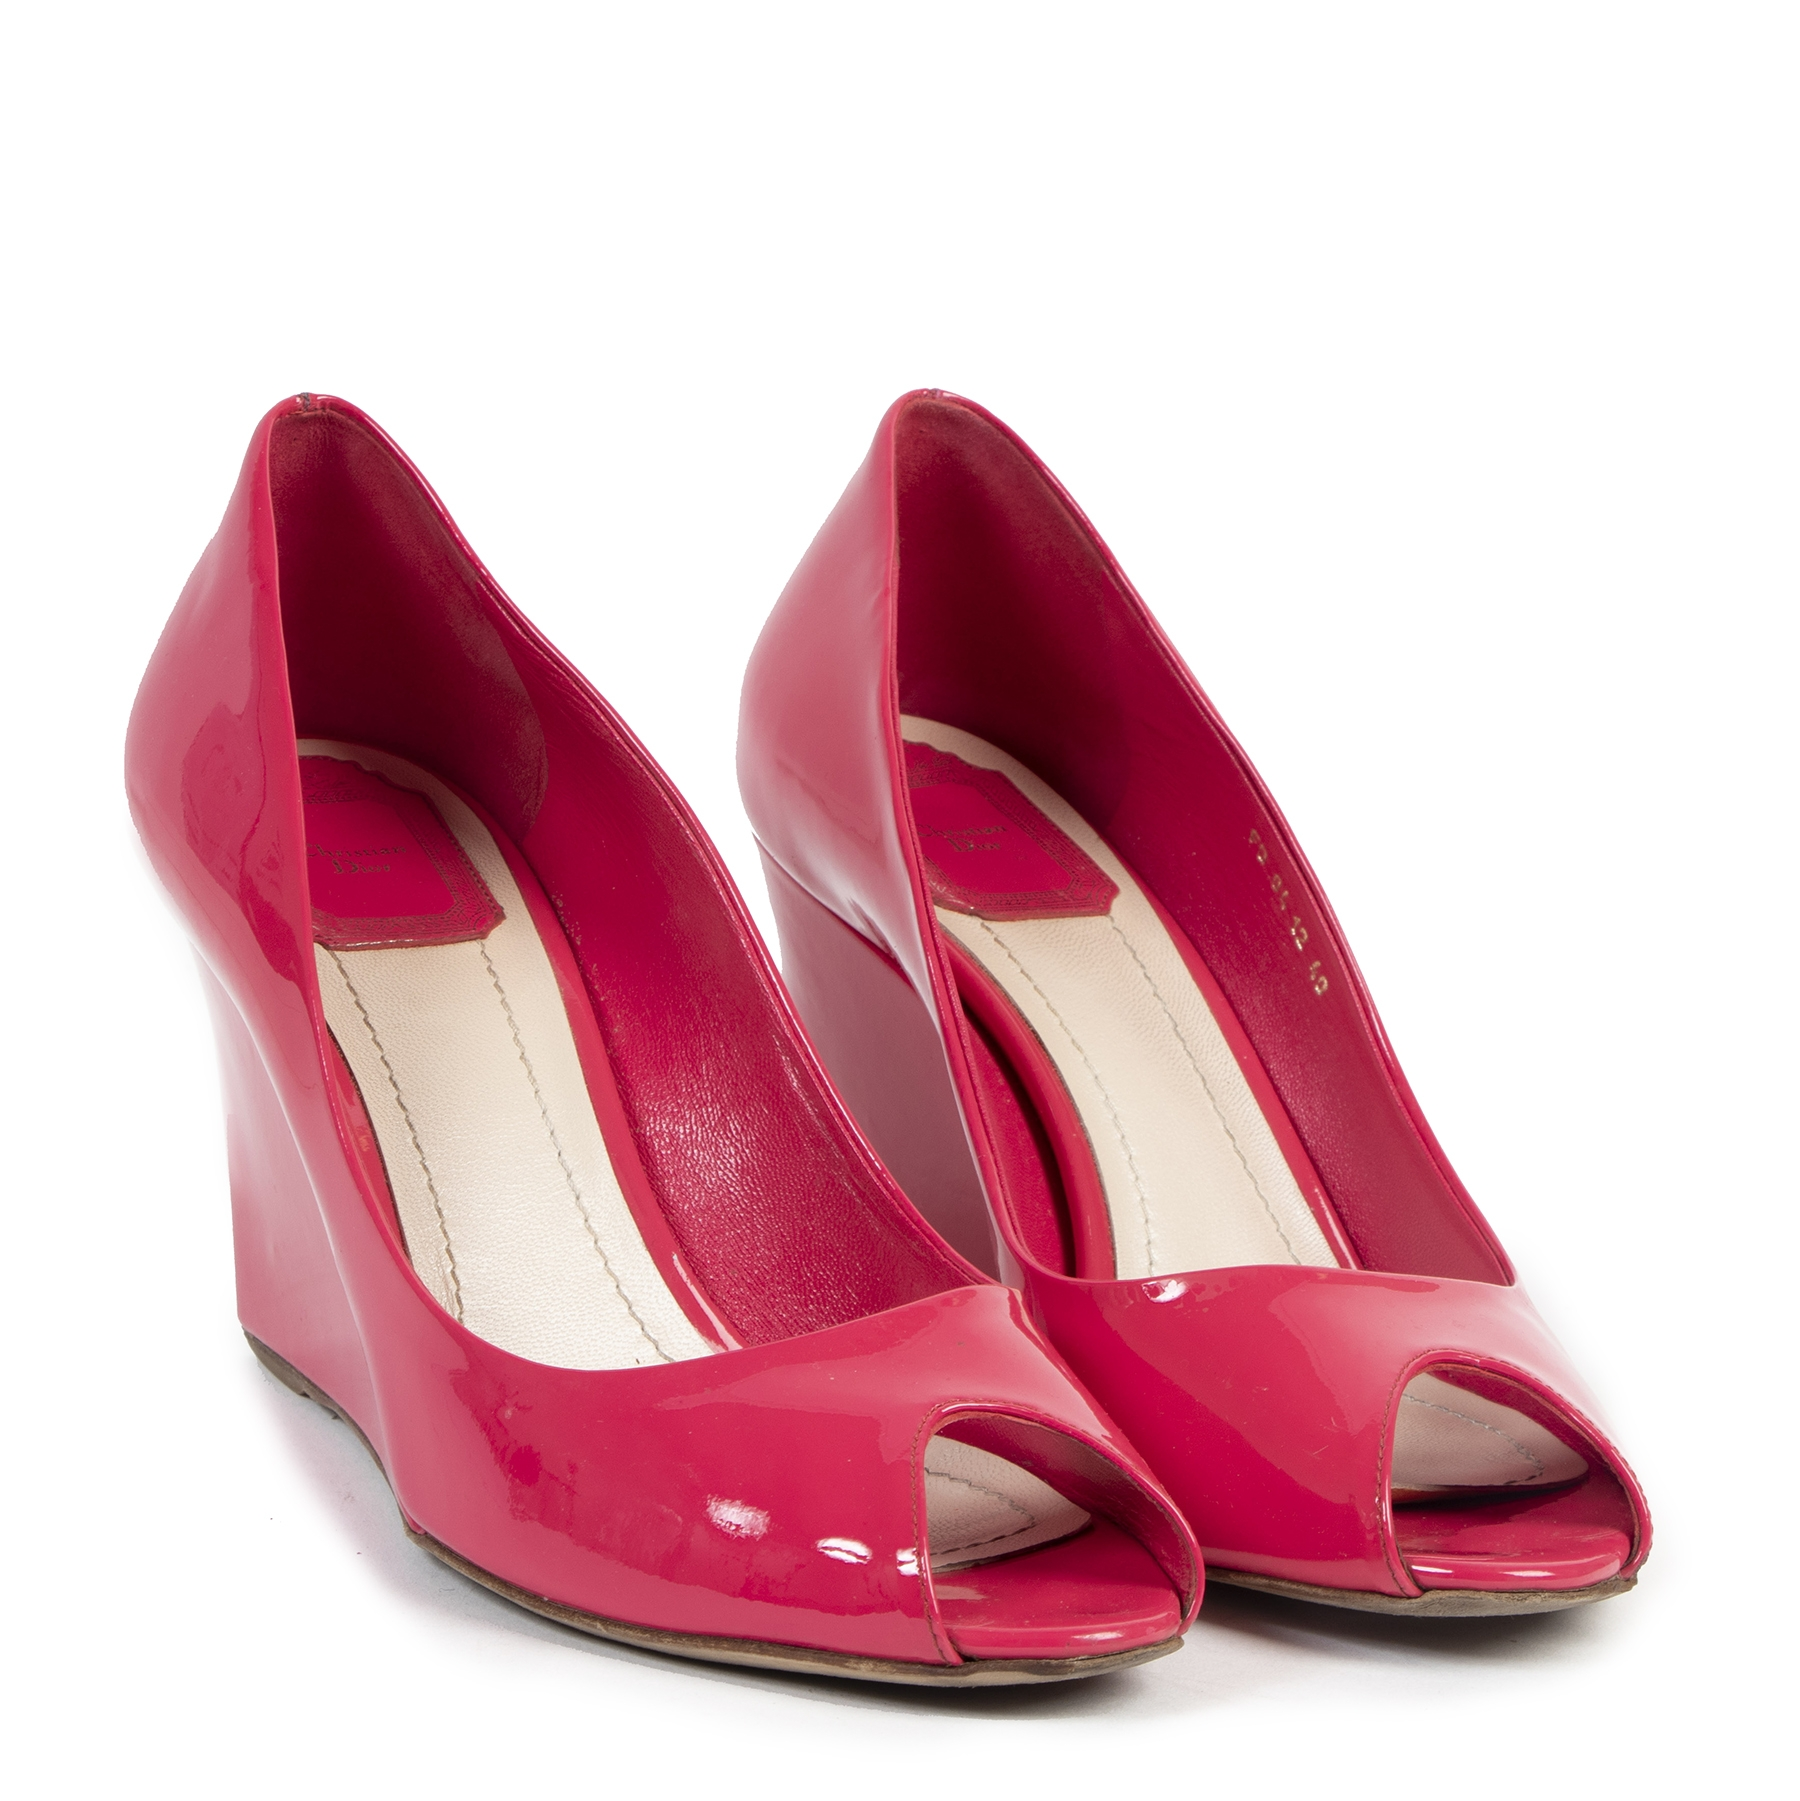 Authentic secondhand Dior Candy Pink Patent Peep Toe Wedge Pumps - Size 40 designer shoes fashion luxury vintage webshop safe secure online shopping